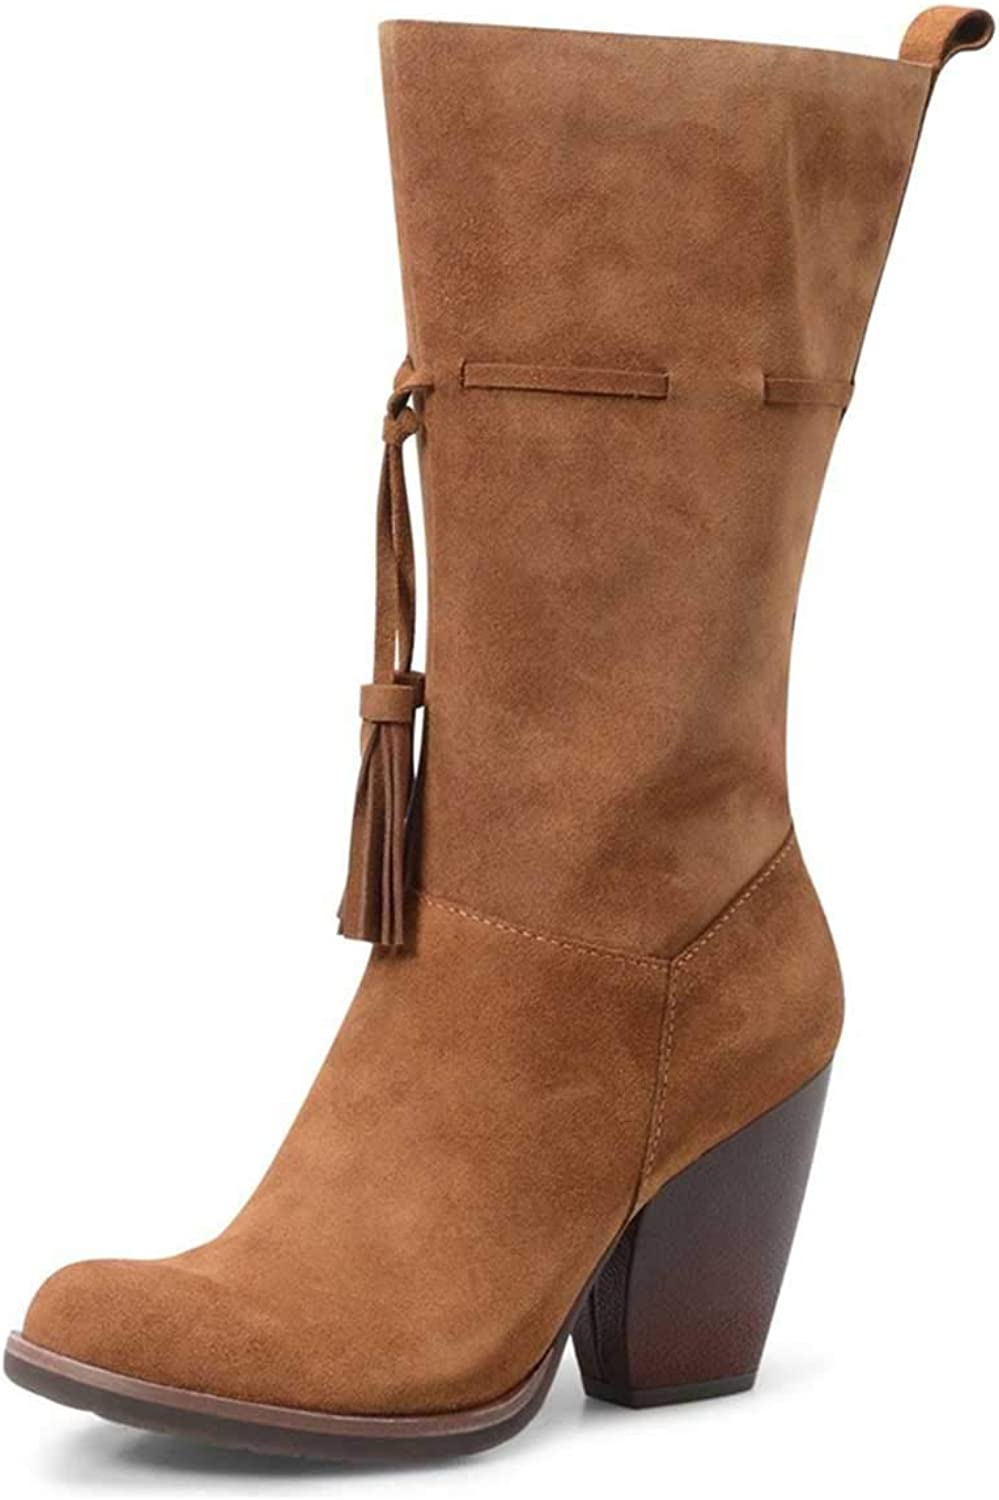 NJ Women Round Toe Chunky Block Heel Knee High Riding Boots Wide Calf Side Zipper with Tassels Comfy Suede Winter shoes